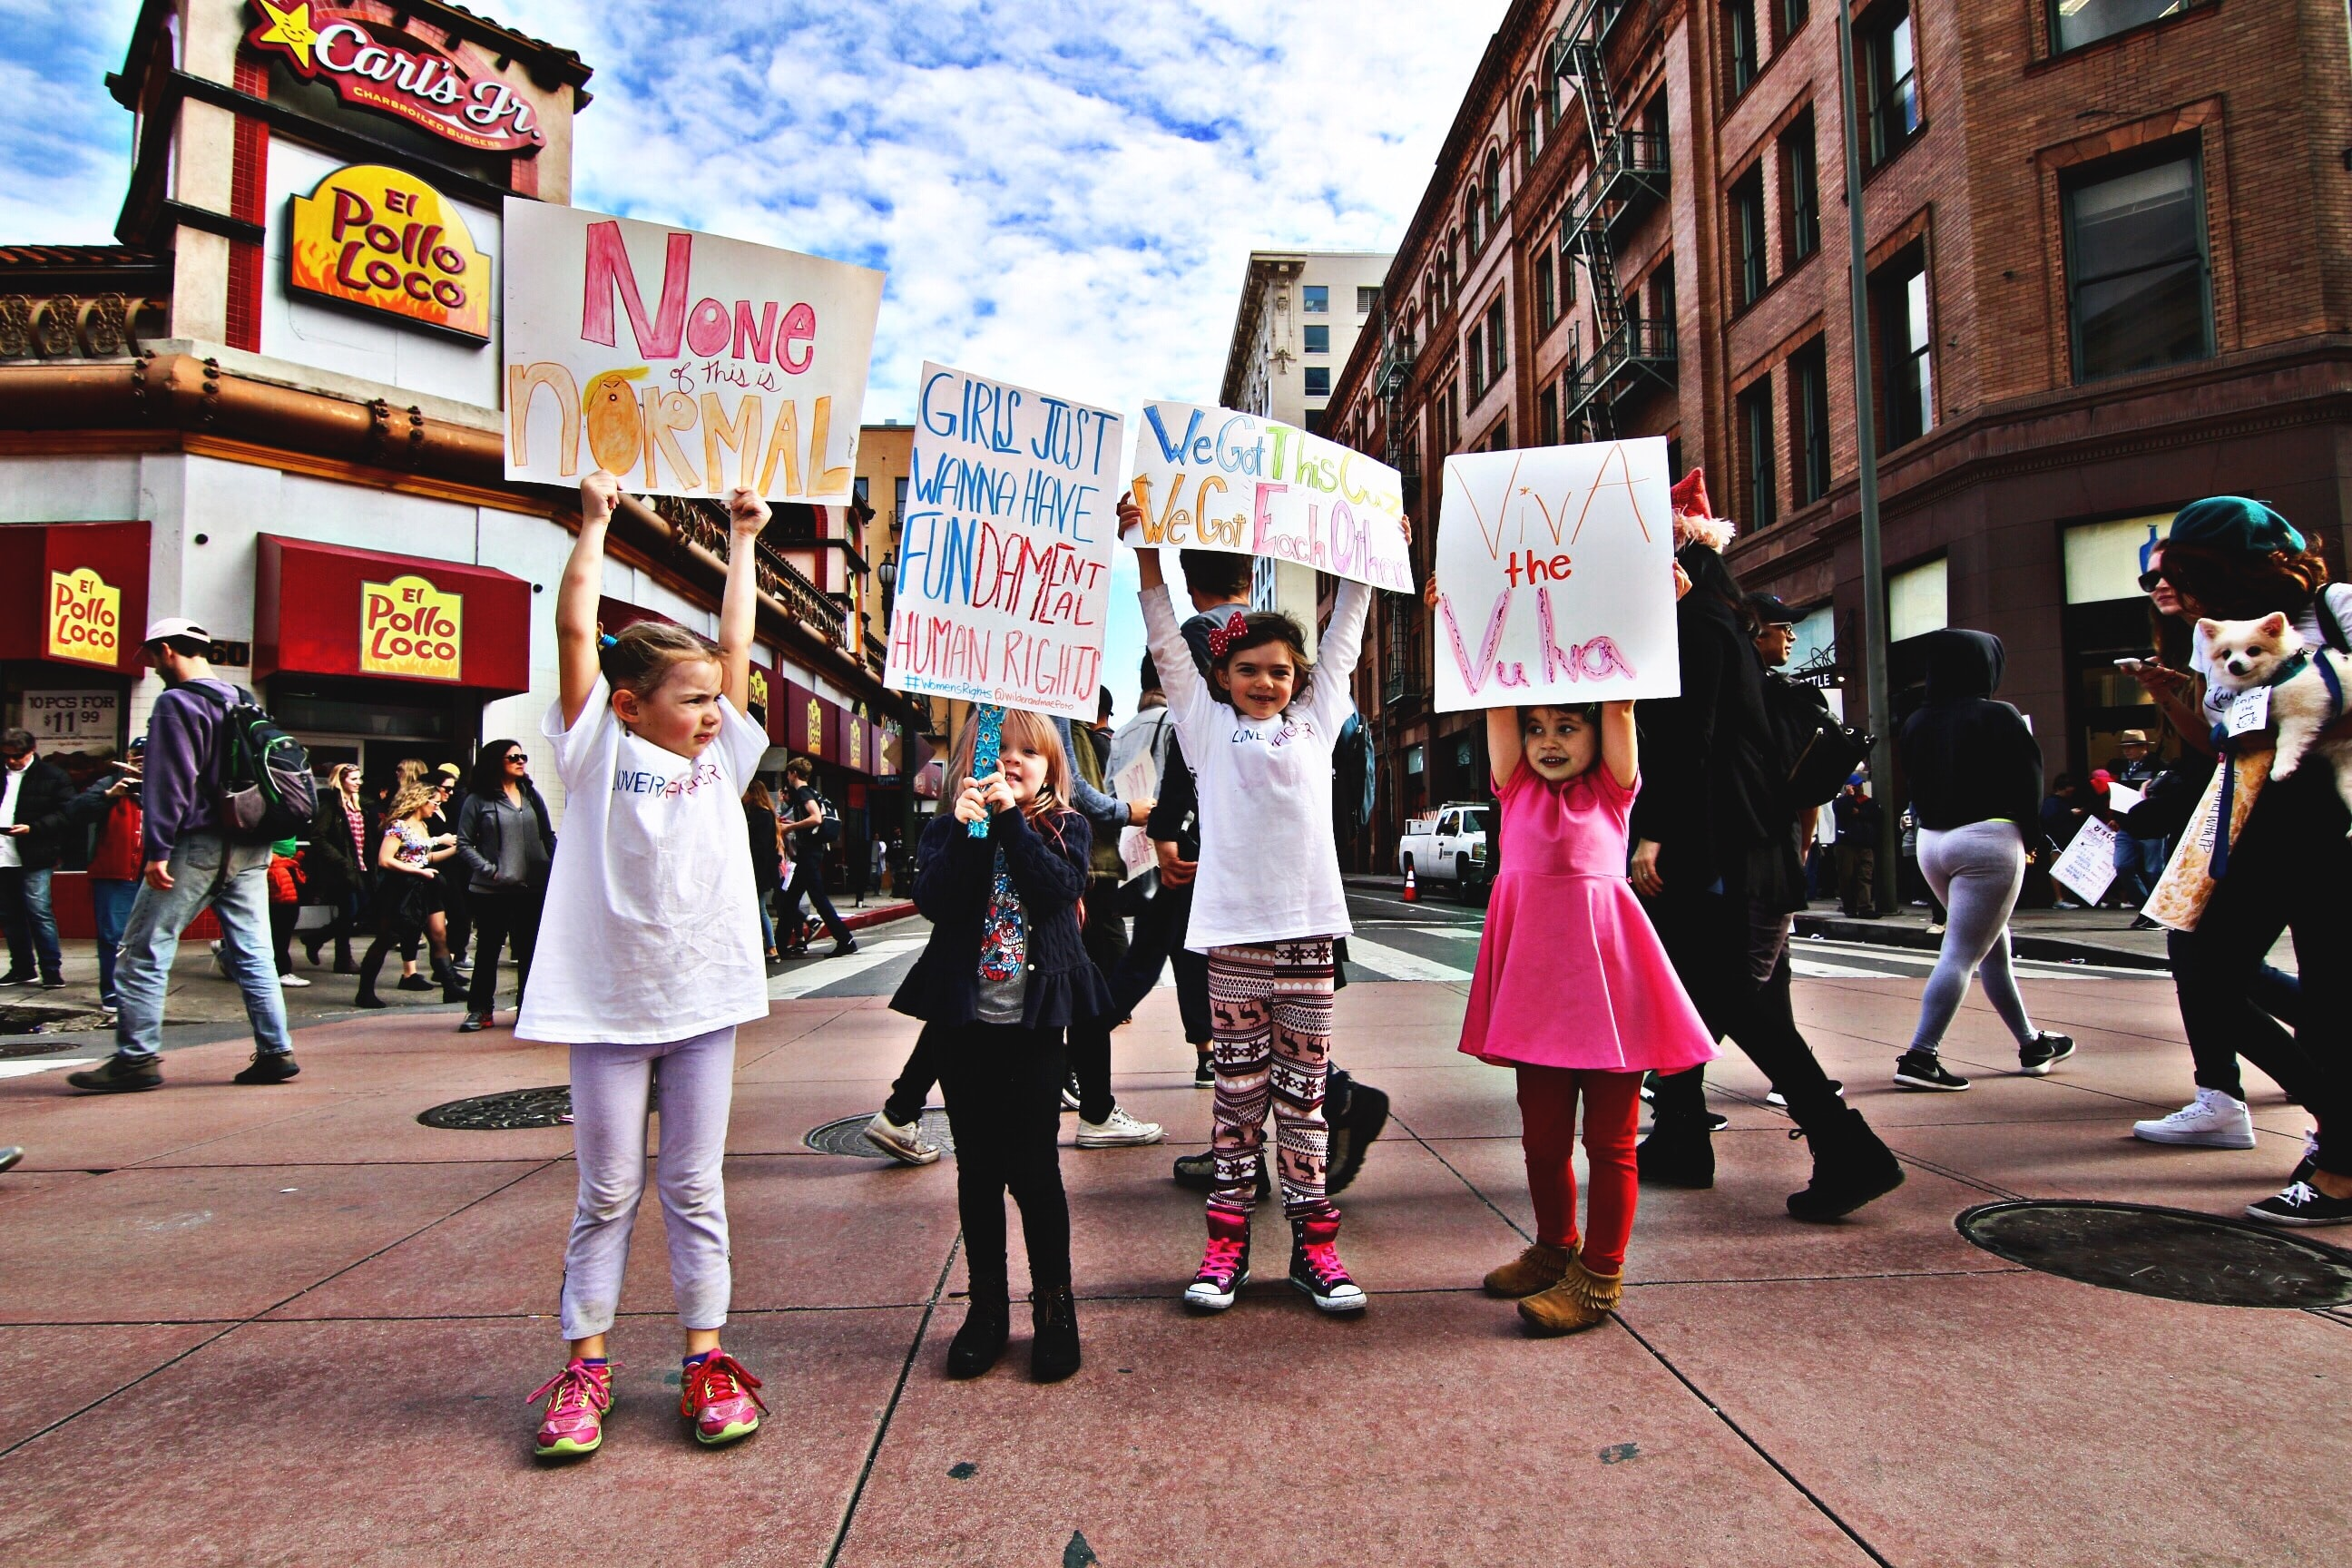 Young girls protest at the Women's March holding feminist signs and posters